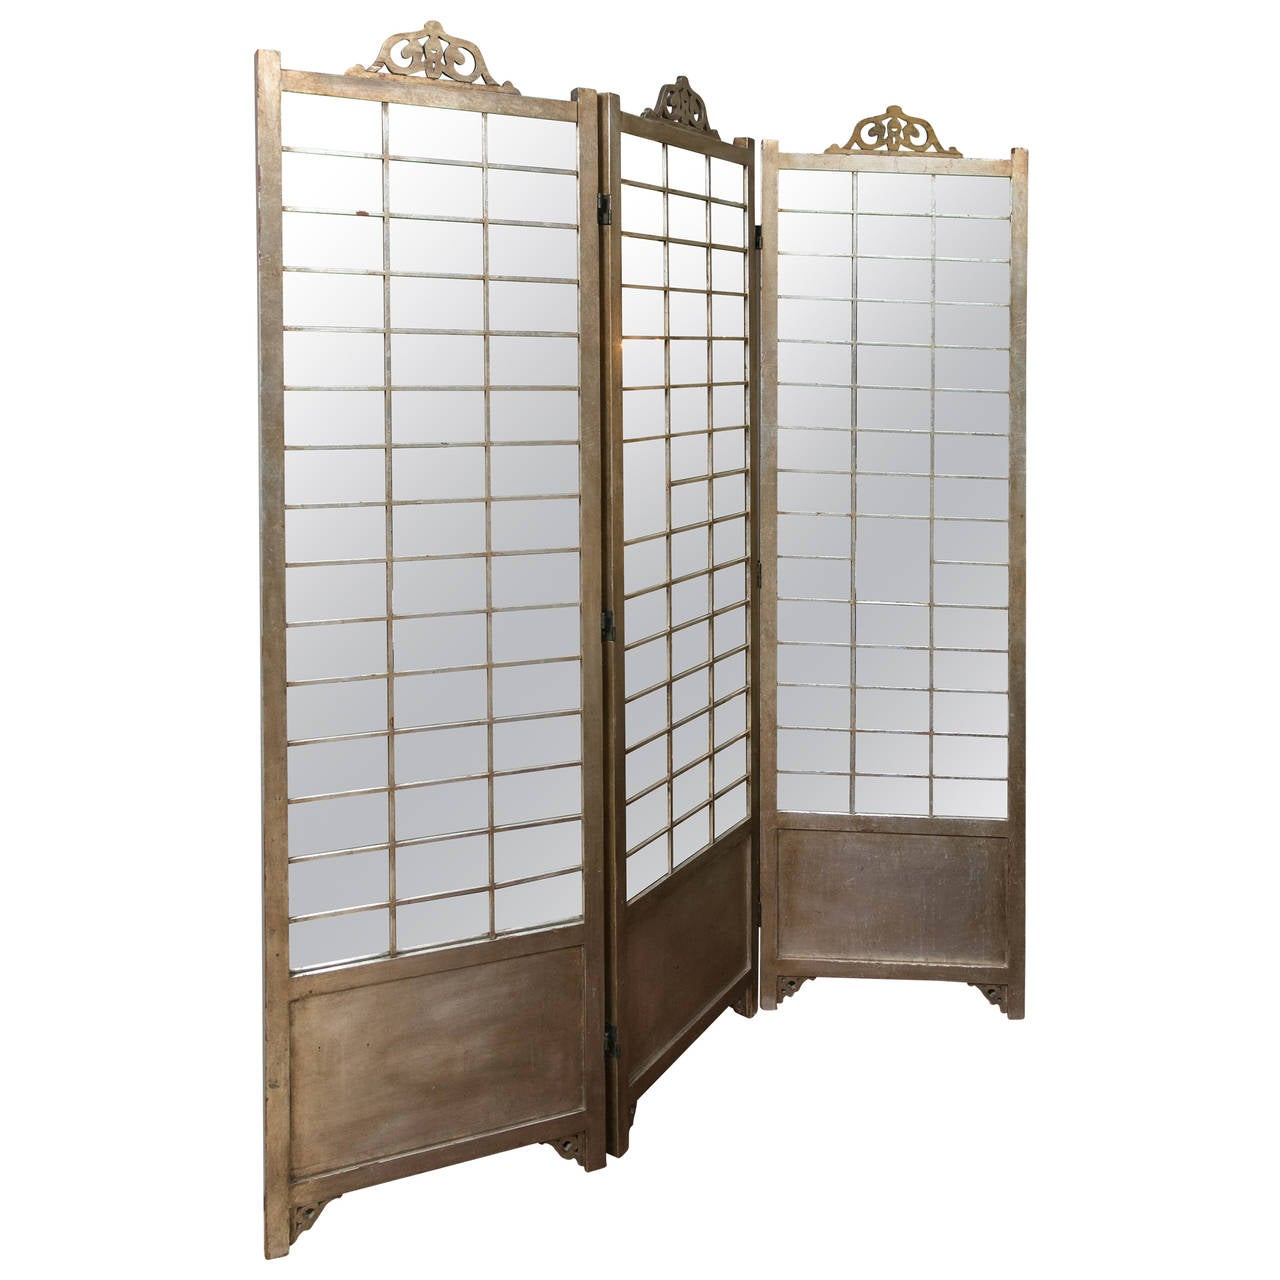 Hollywood Regency Mirror and Silver Gilt Screen or Room Divider 1